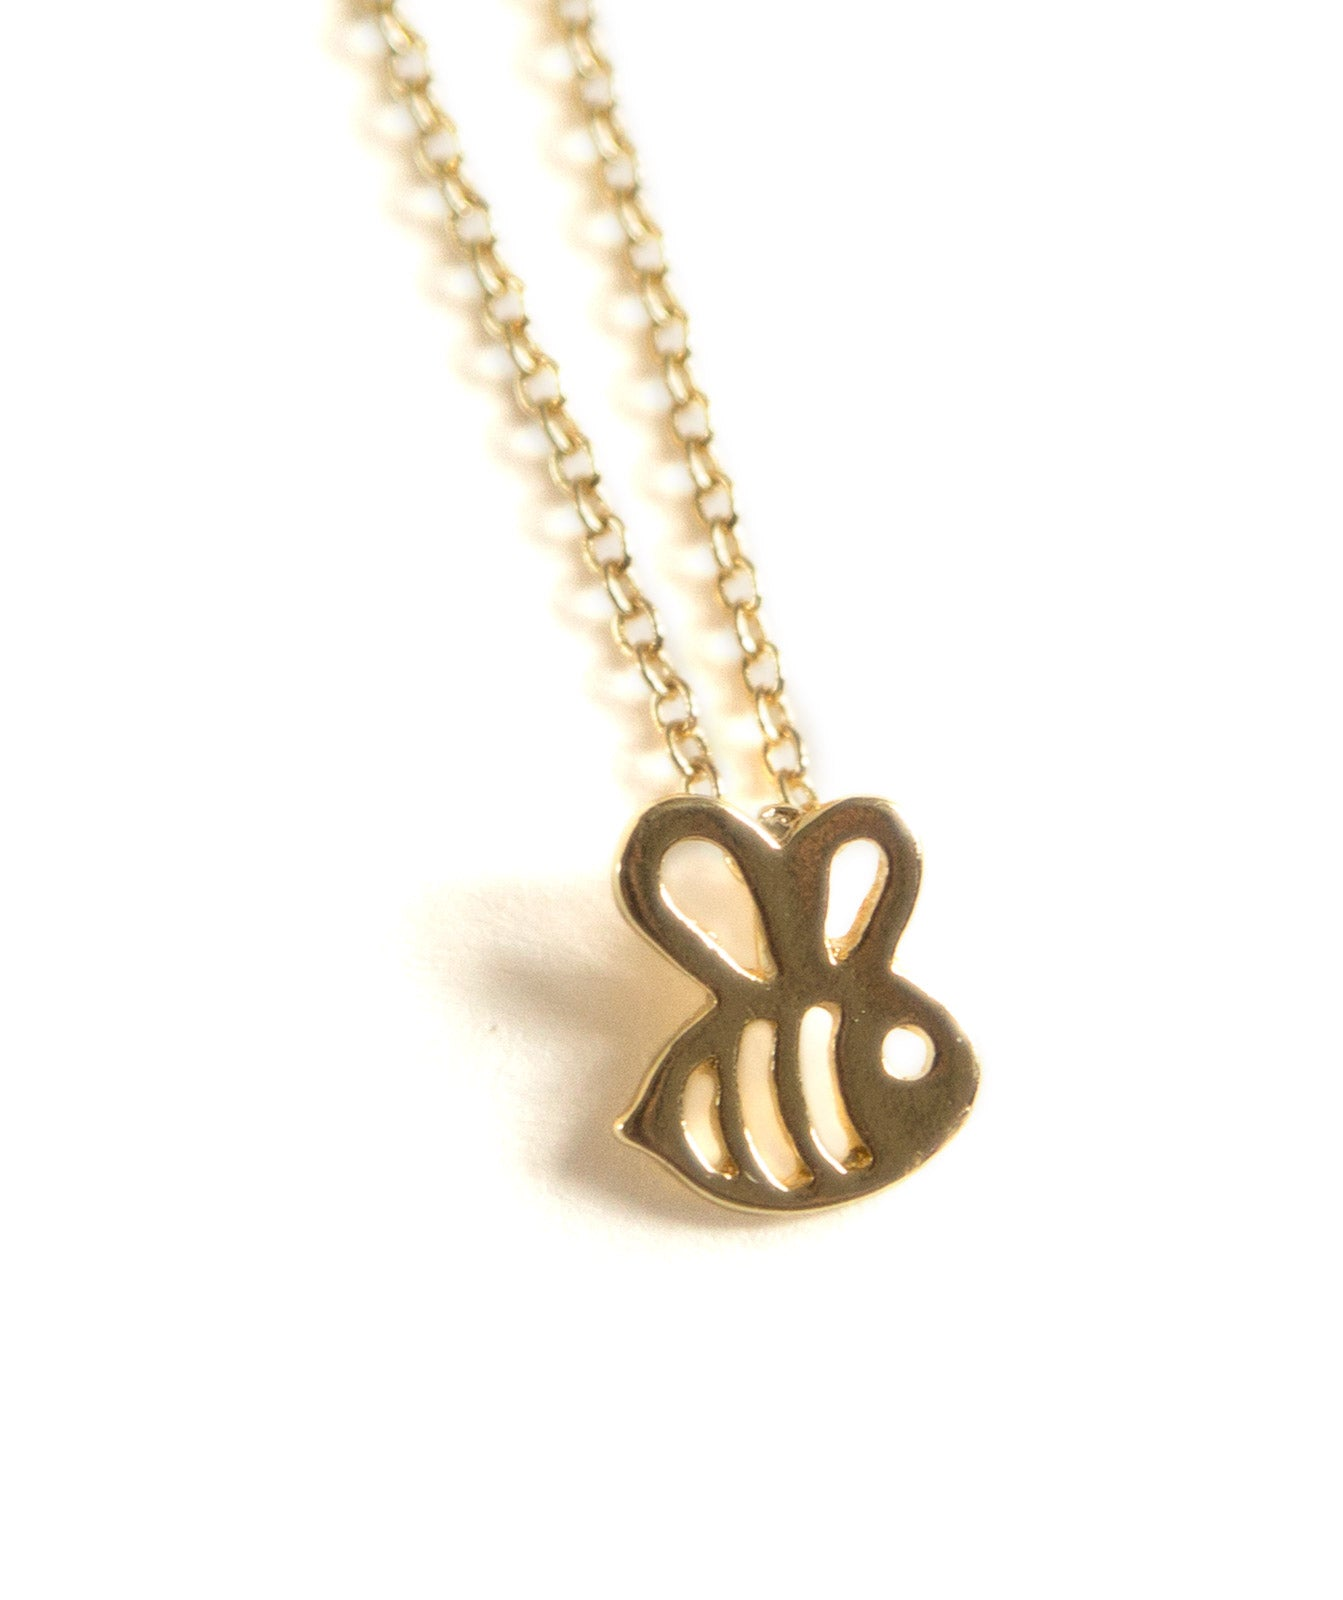 Bee pendant necklace well done goods bee gold pendant necklace well done goods aloadofball